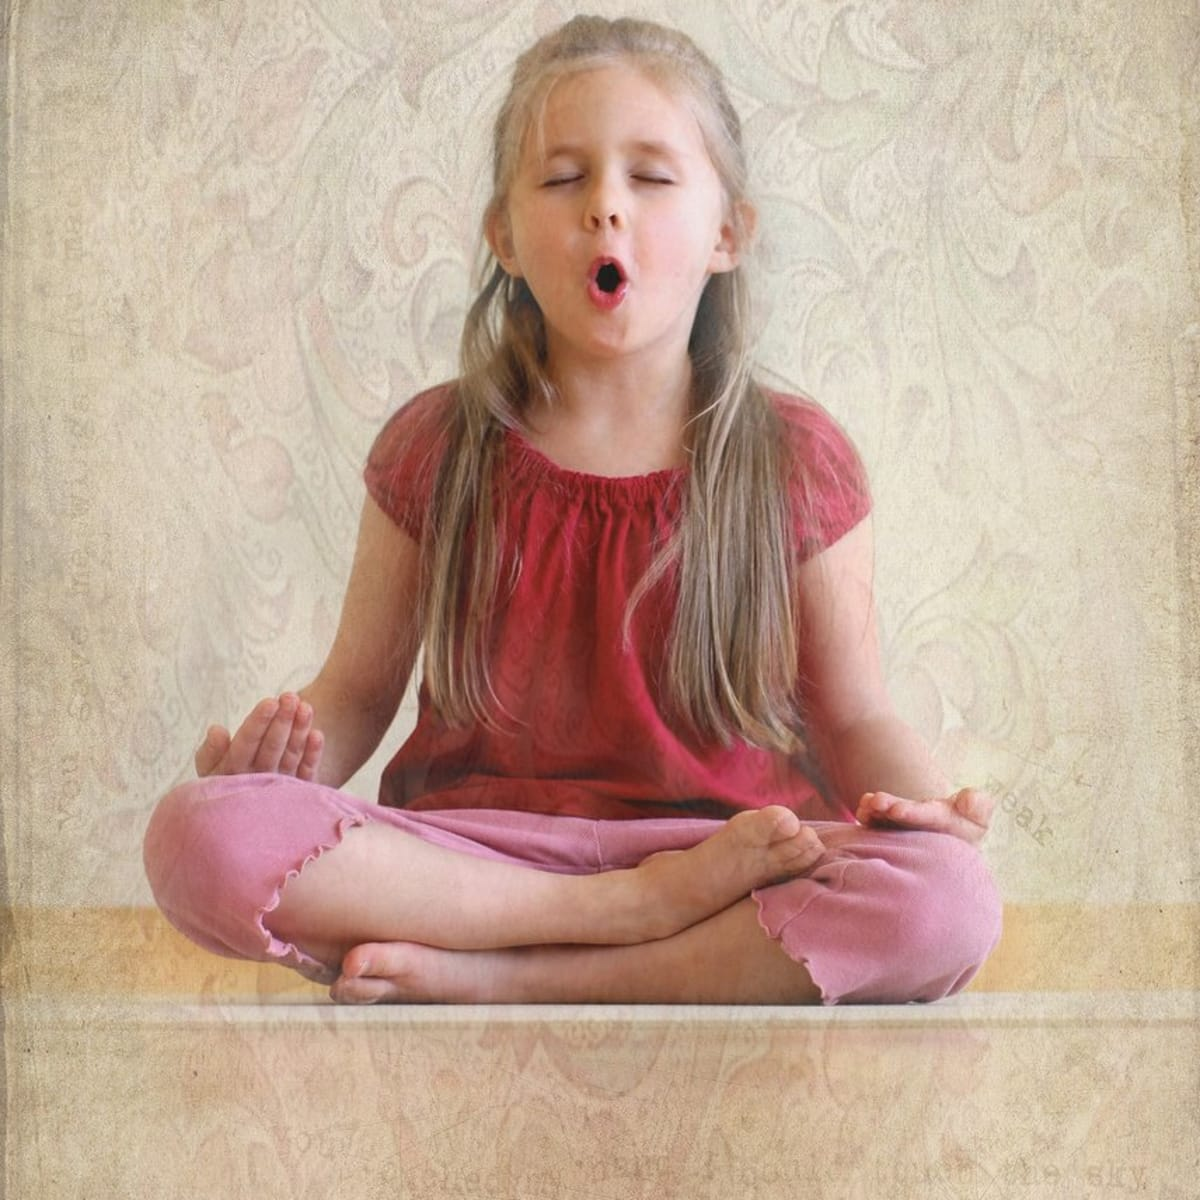 3 Fun And Easy Yoga Poses For Kids Organic Authority